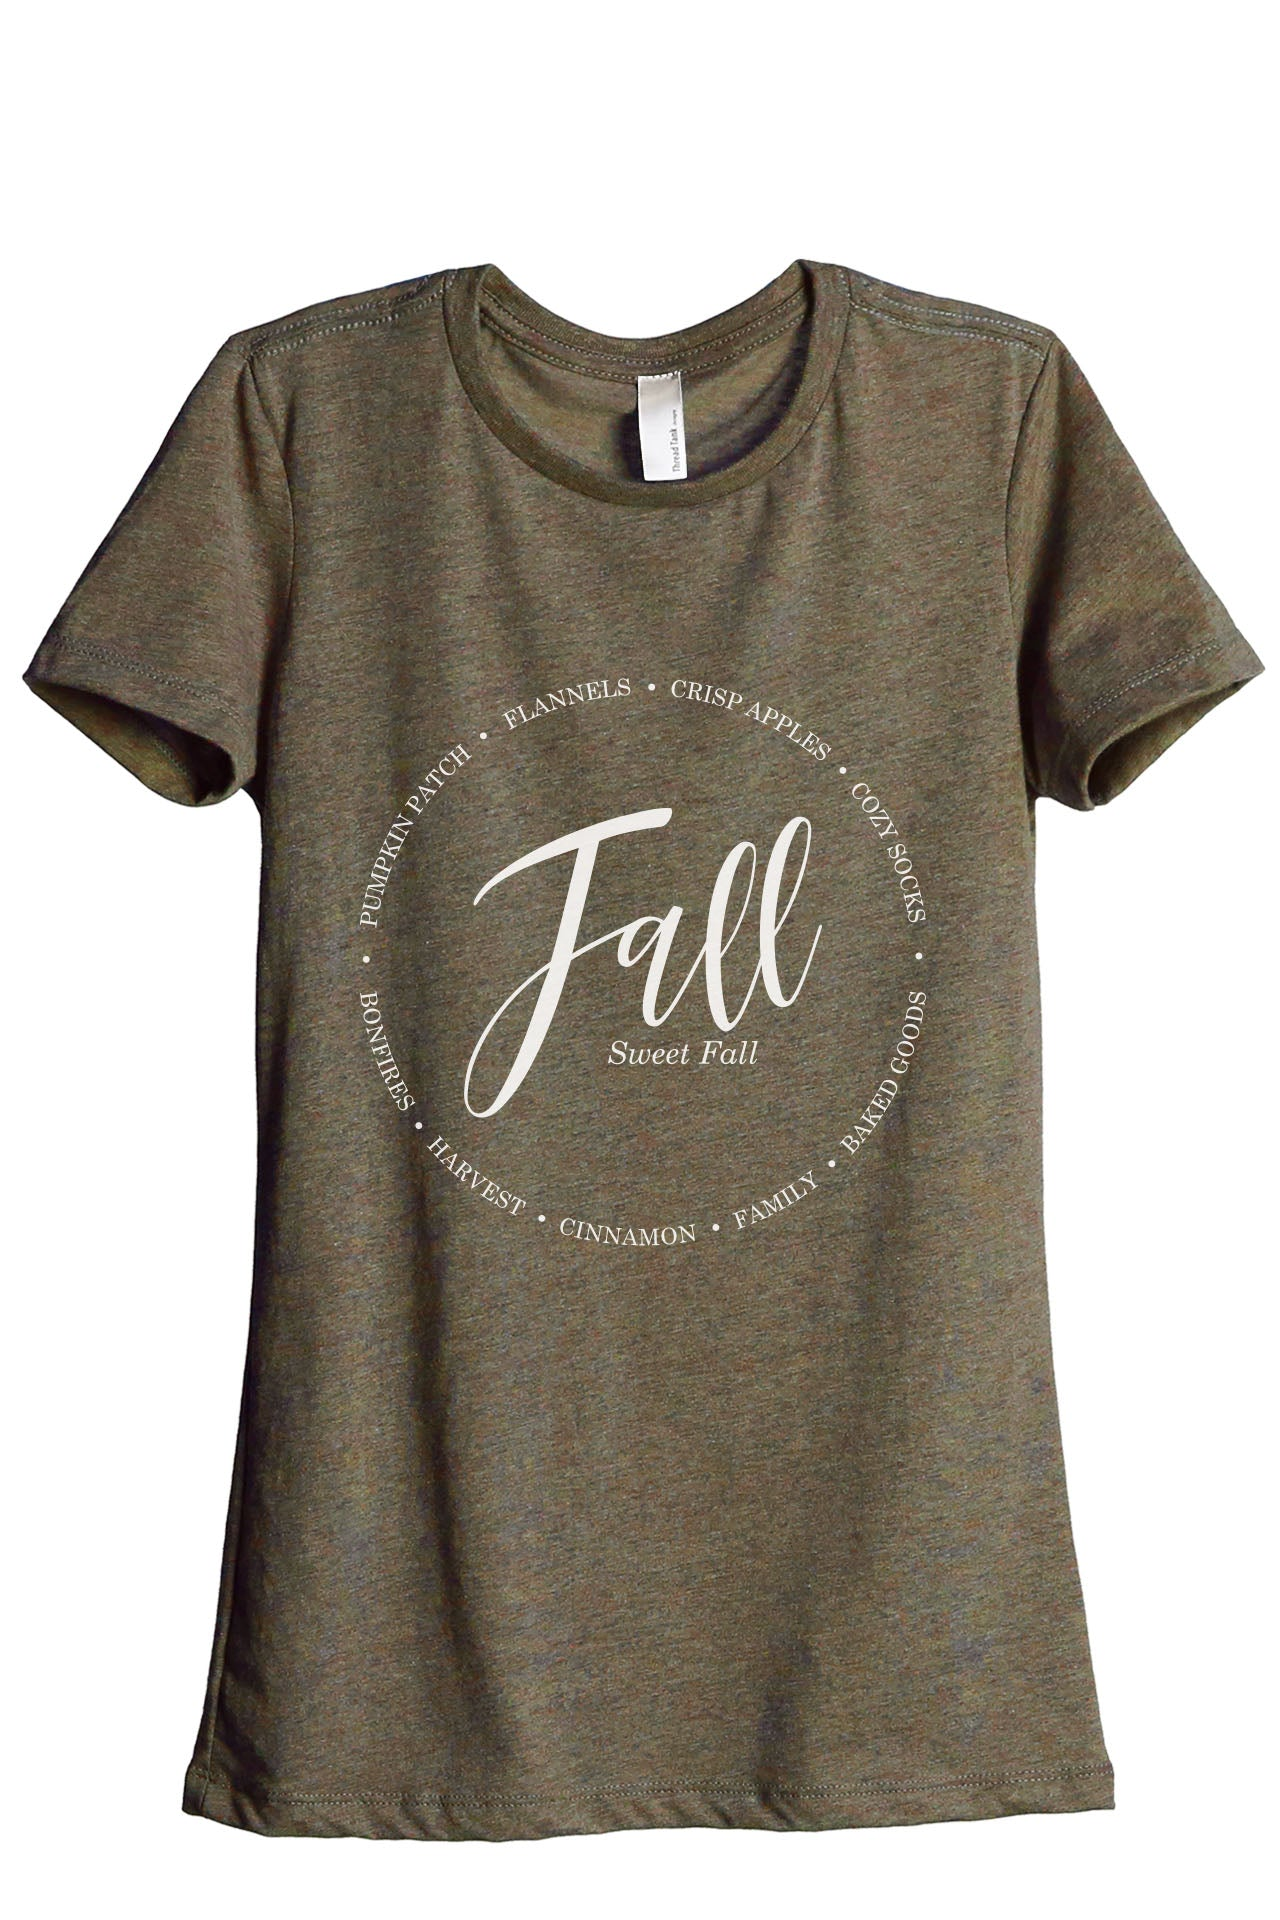 Fall Sweet Fall Meaning Women's Relaxed Crewneck T-Shirt Top Tee Heather Sage